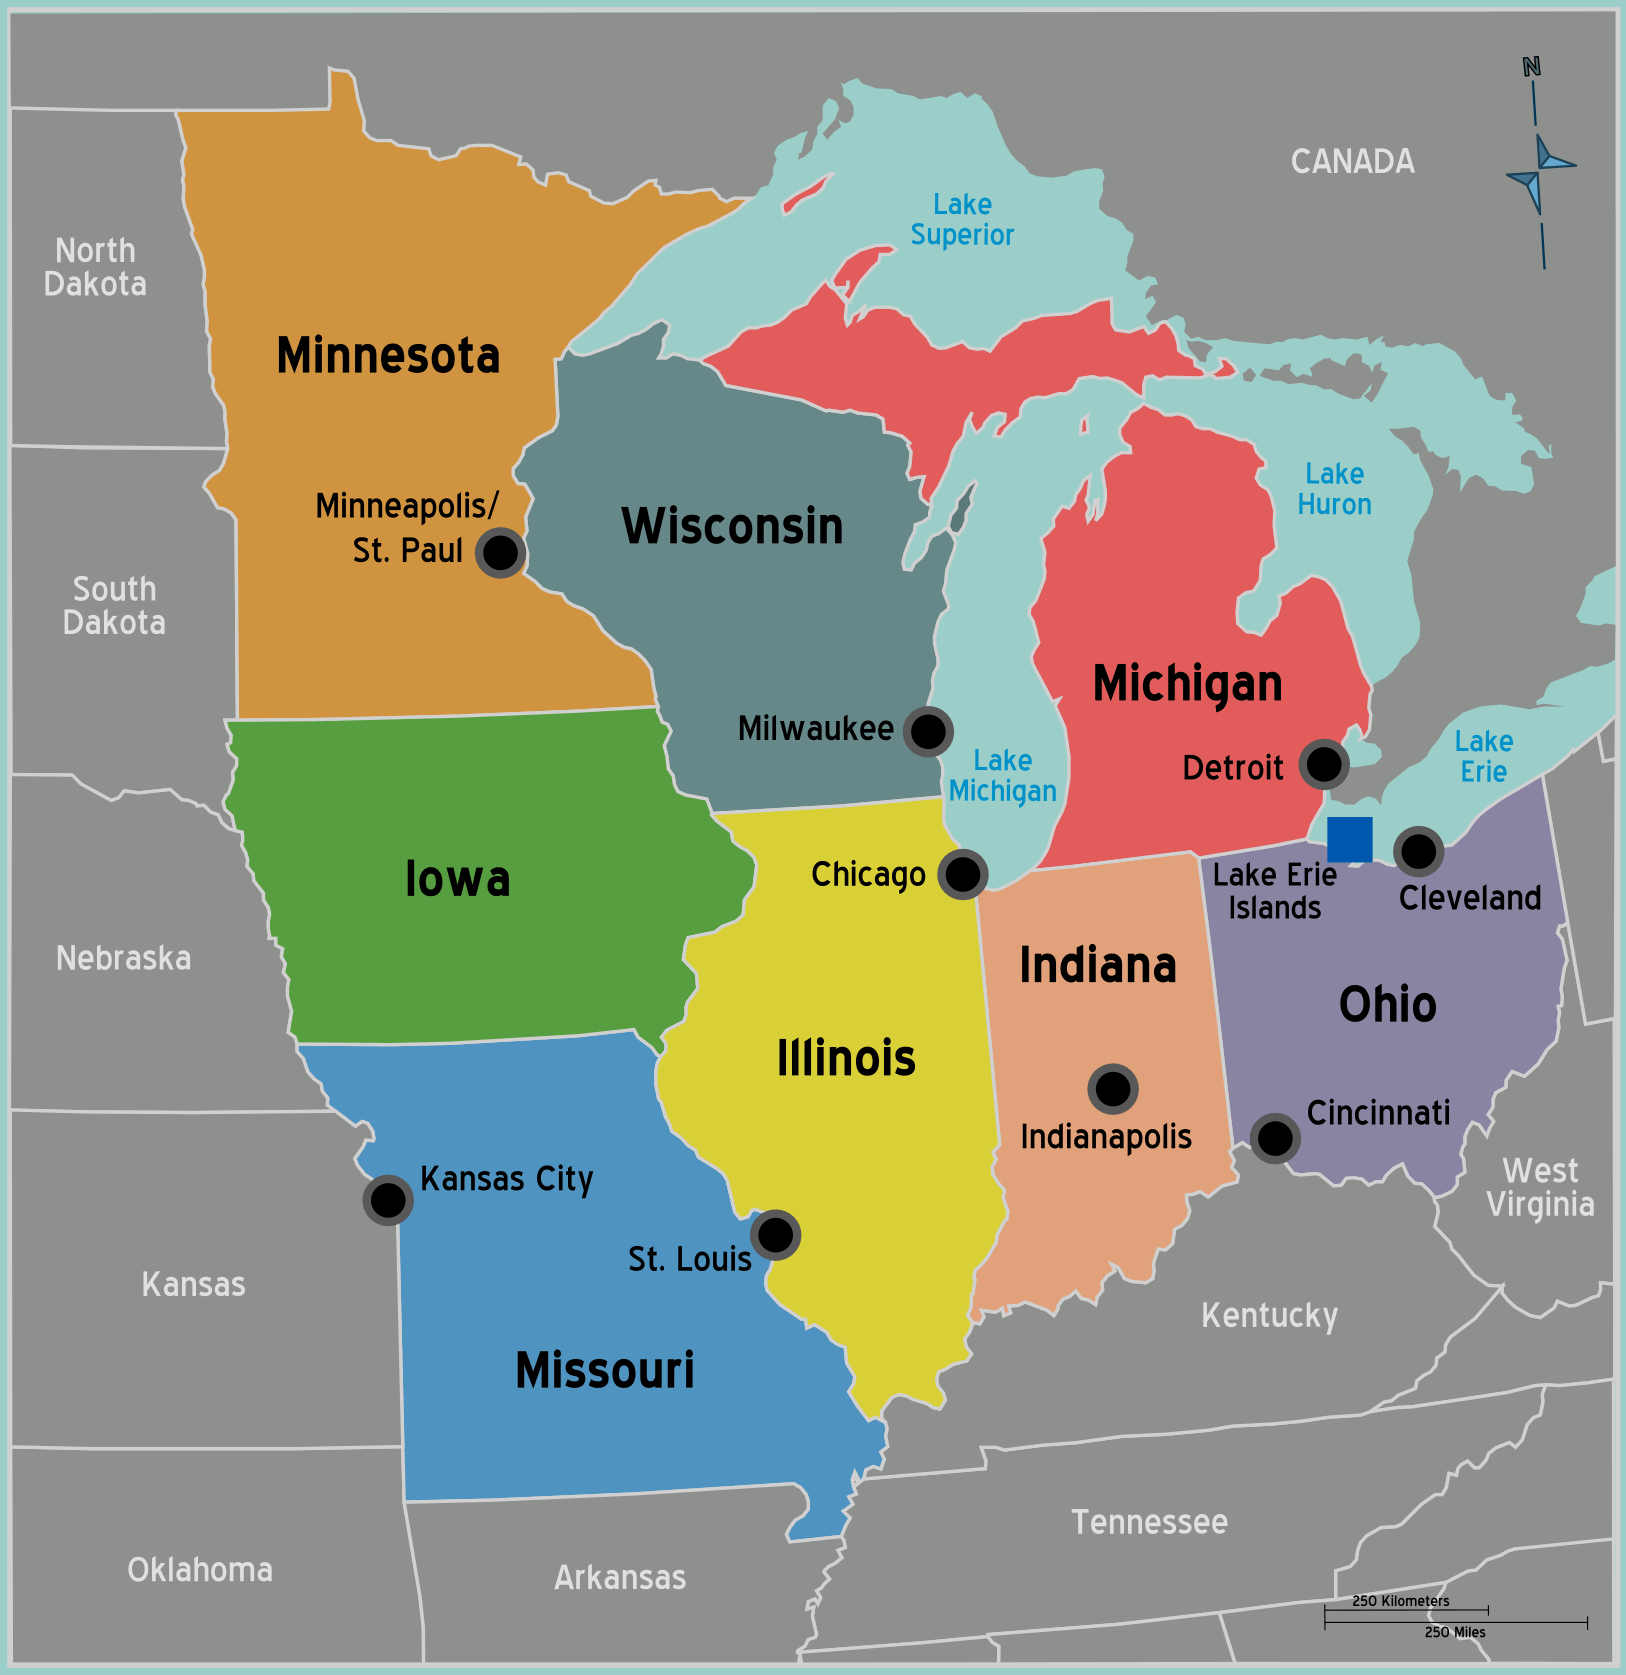 Midwest Map With Capitals Midwest Free Download Images World Maps The Map Of The United Map Of Usa With States And Capitals And Major Cities